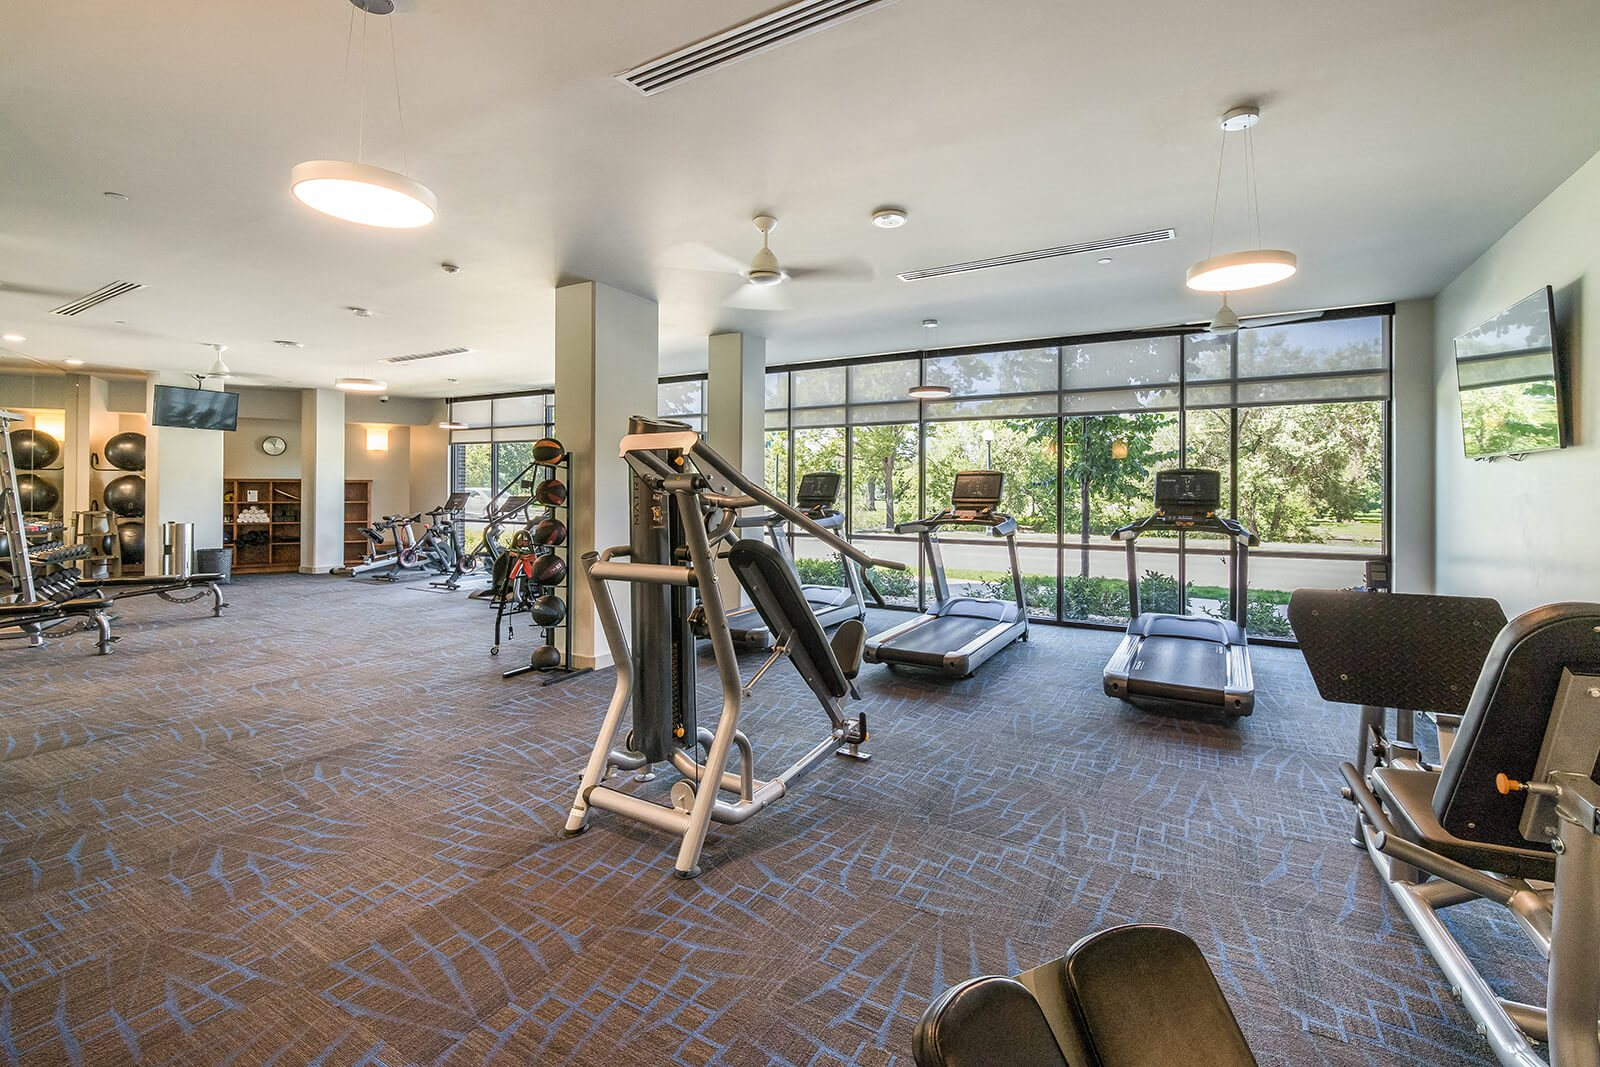 State-of-the-Art Fitness Center Equipped with Matrix at 1000 Speer by Windsor, Colorado, 80204